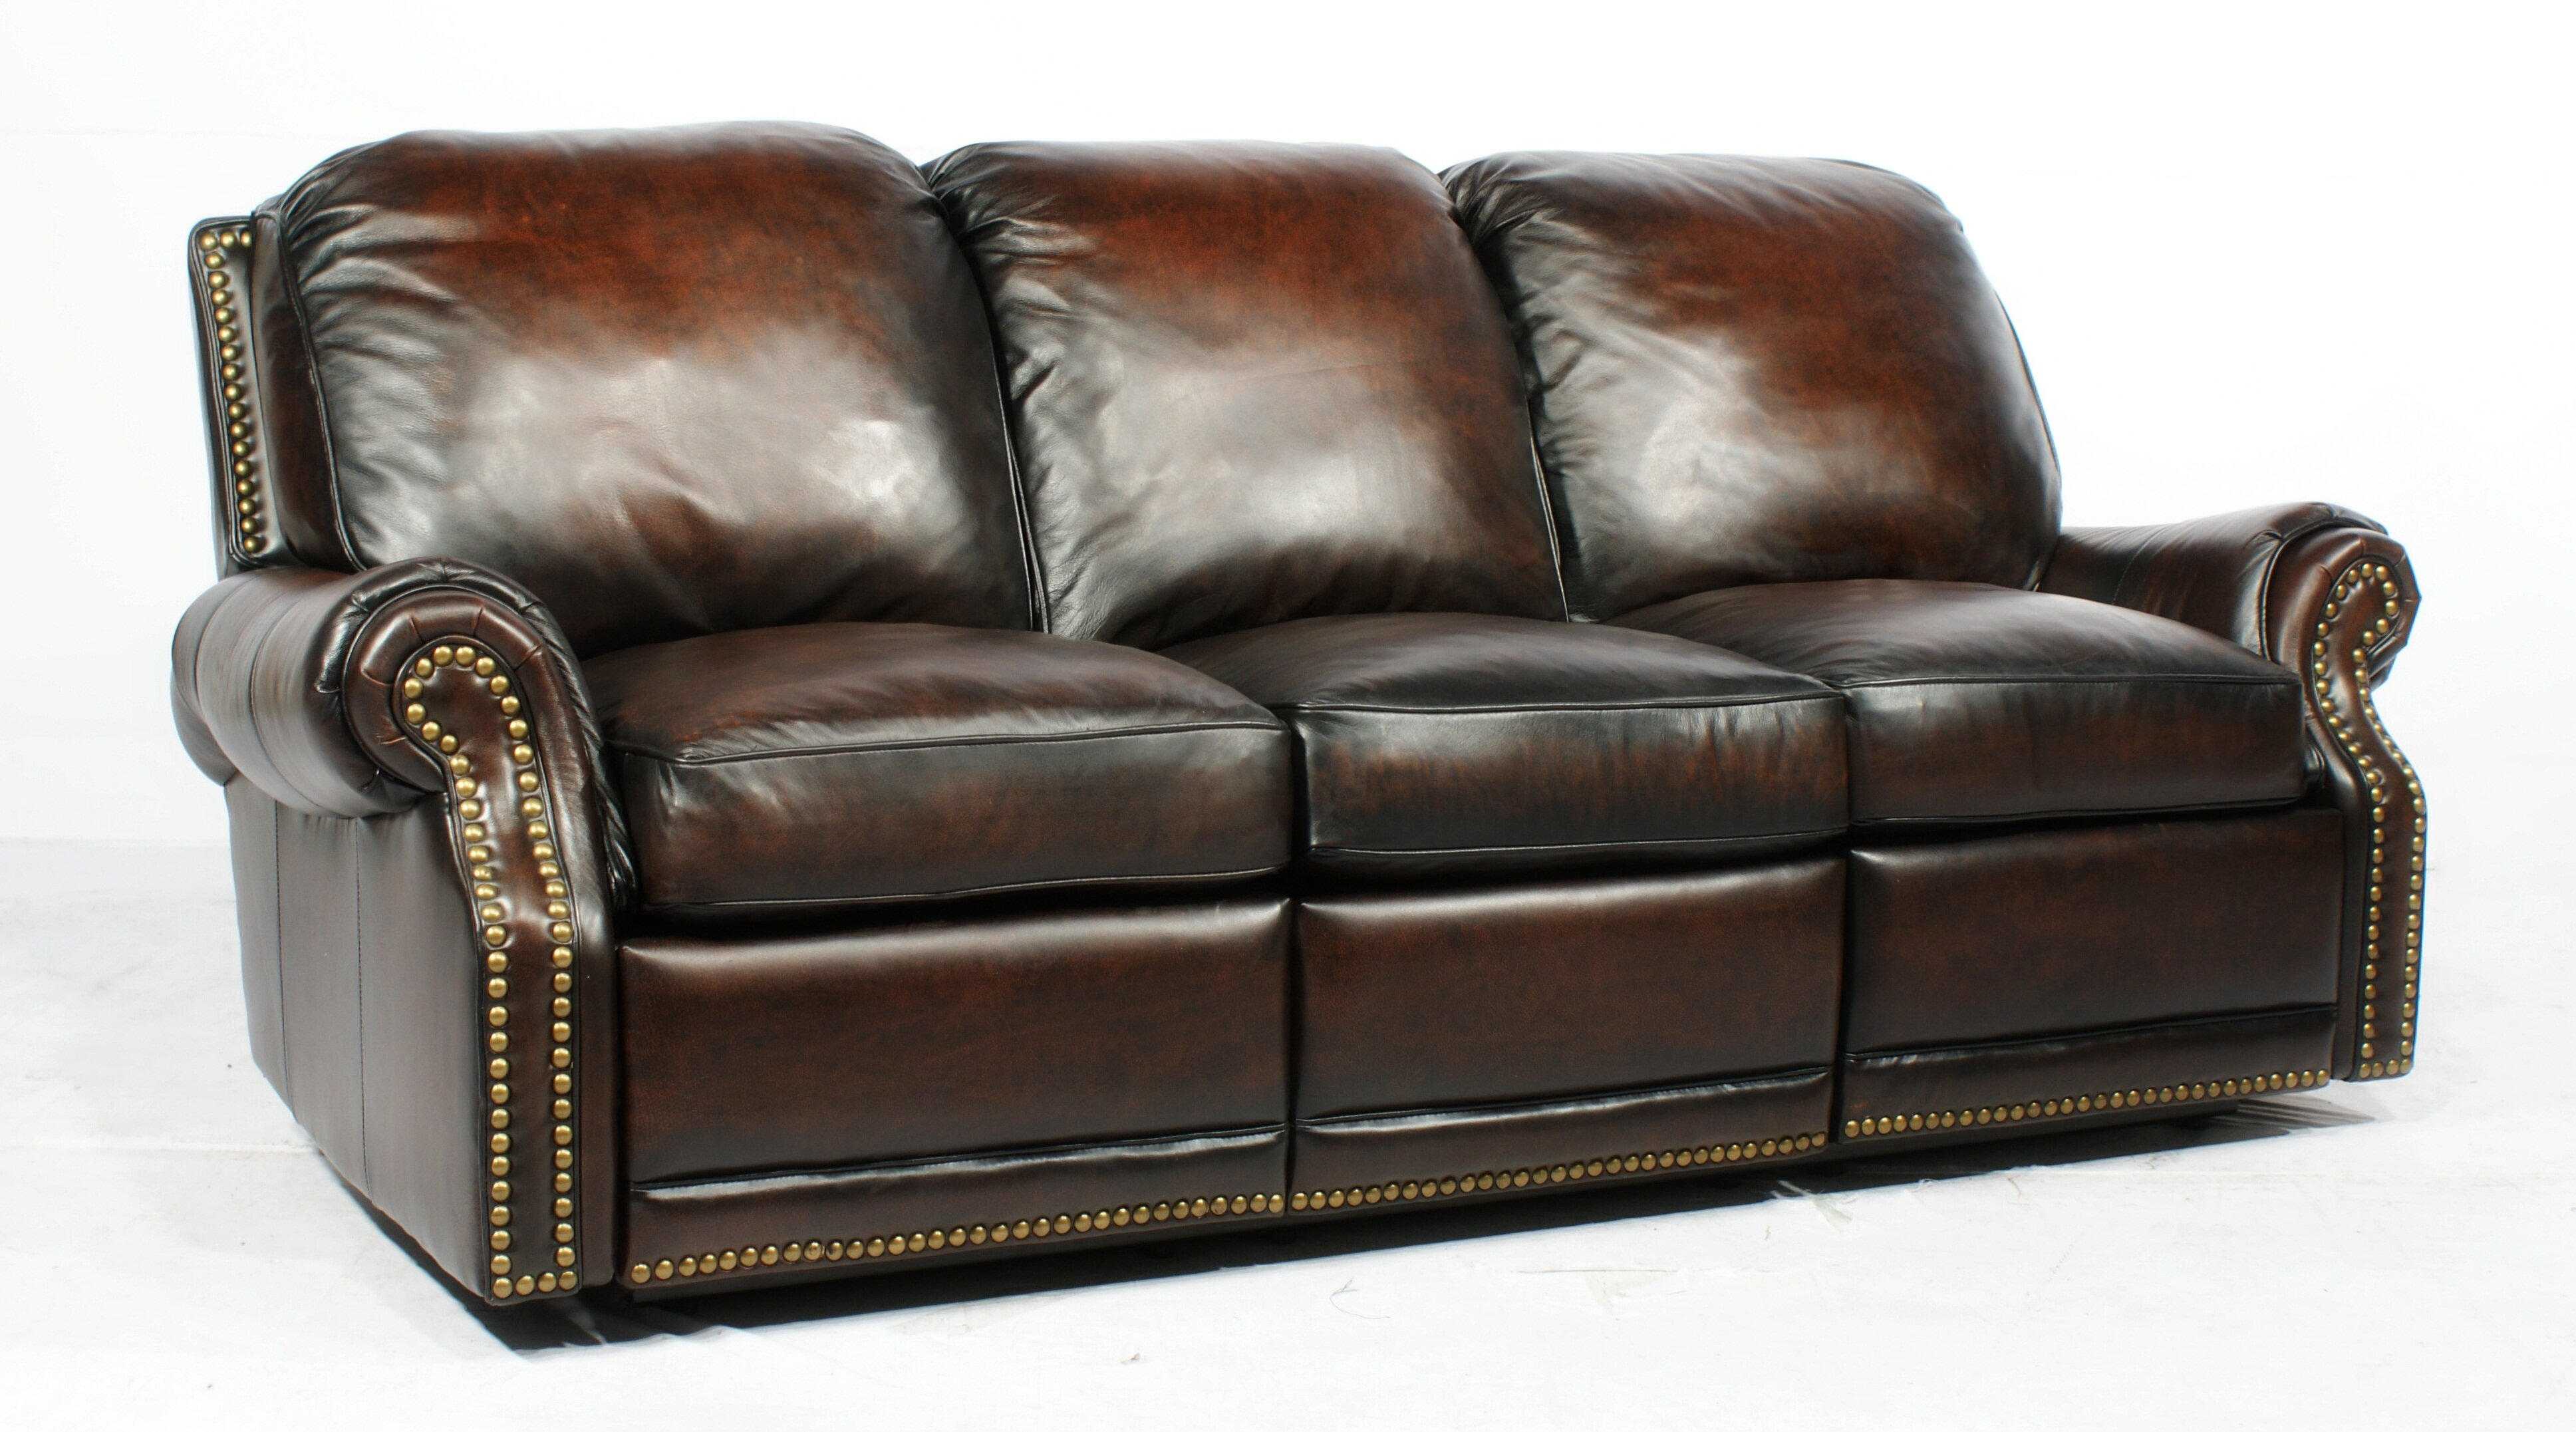 layla gray modern brown couch size tea reclining drop full of sofa recliner design fauxer leather dark down with